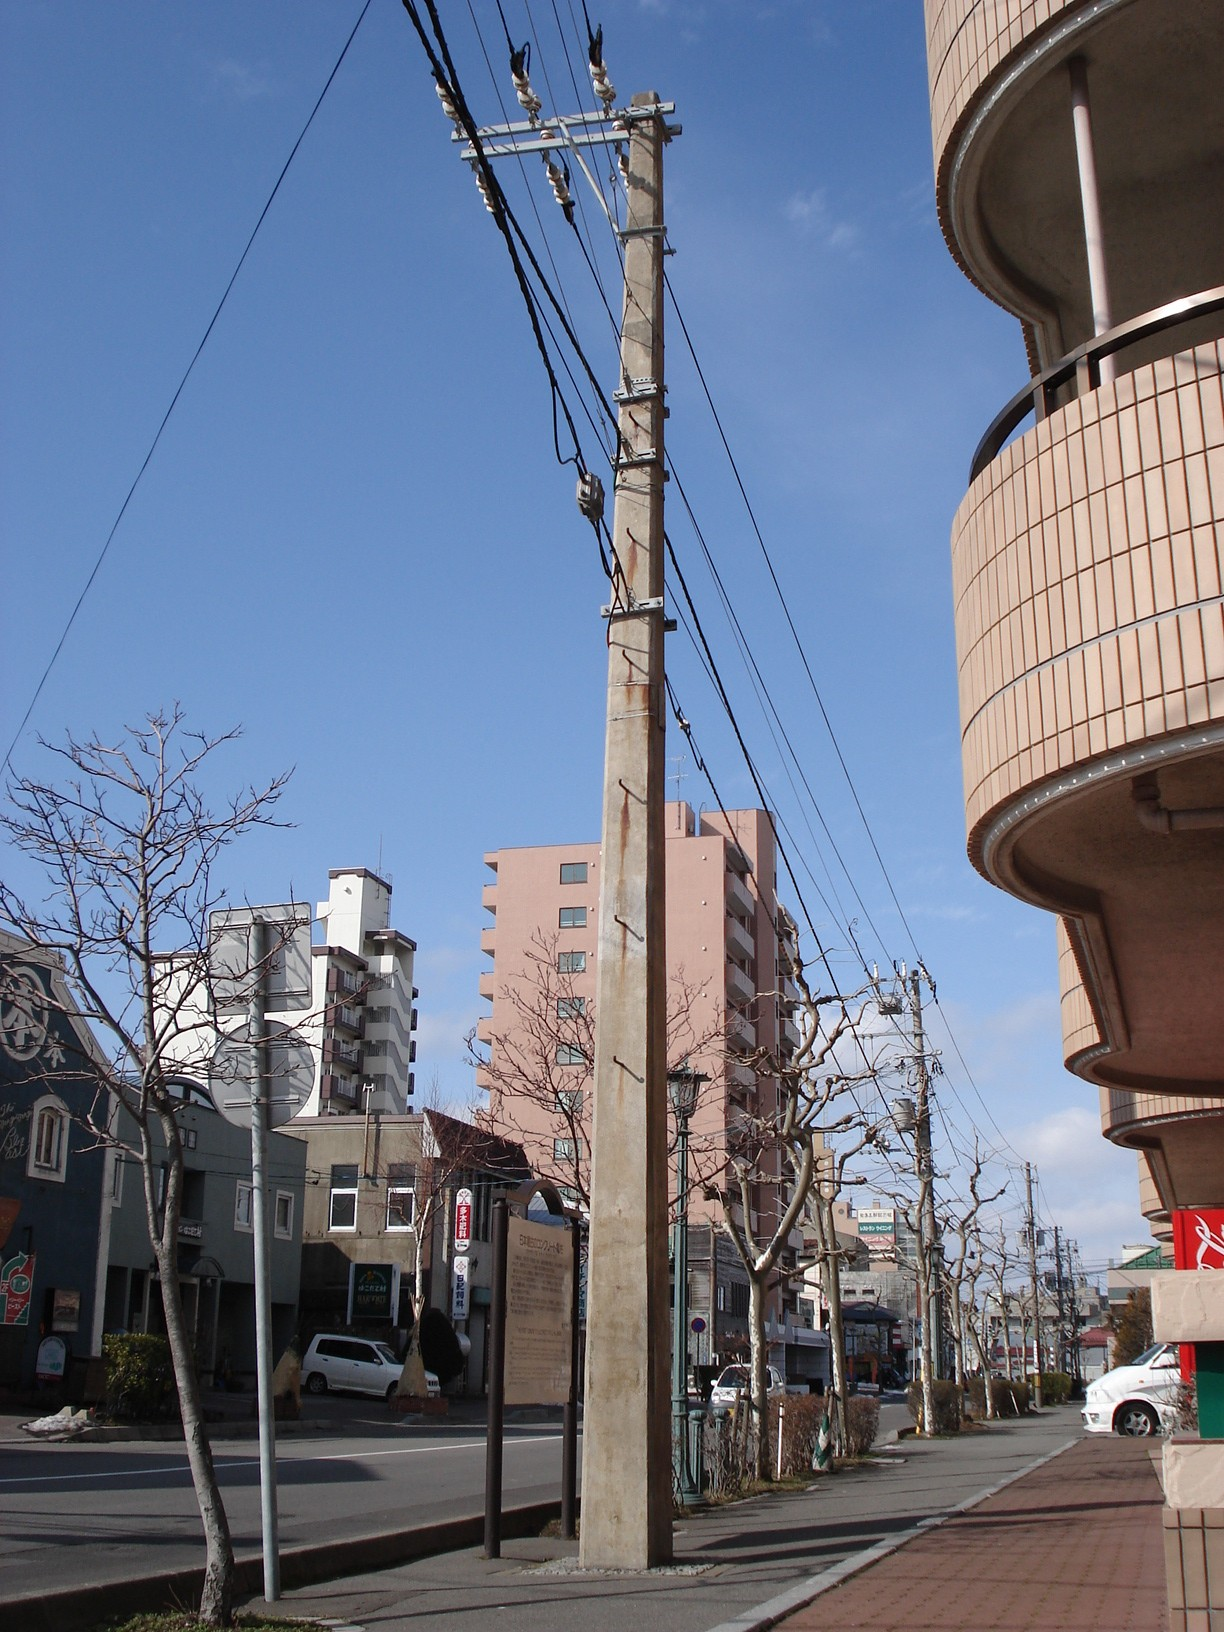 File:Square utility pole 090207.jpg - Wikimedia Commons